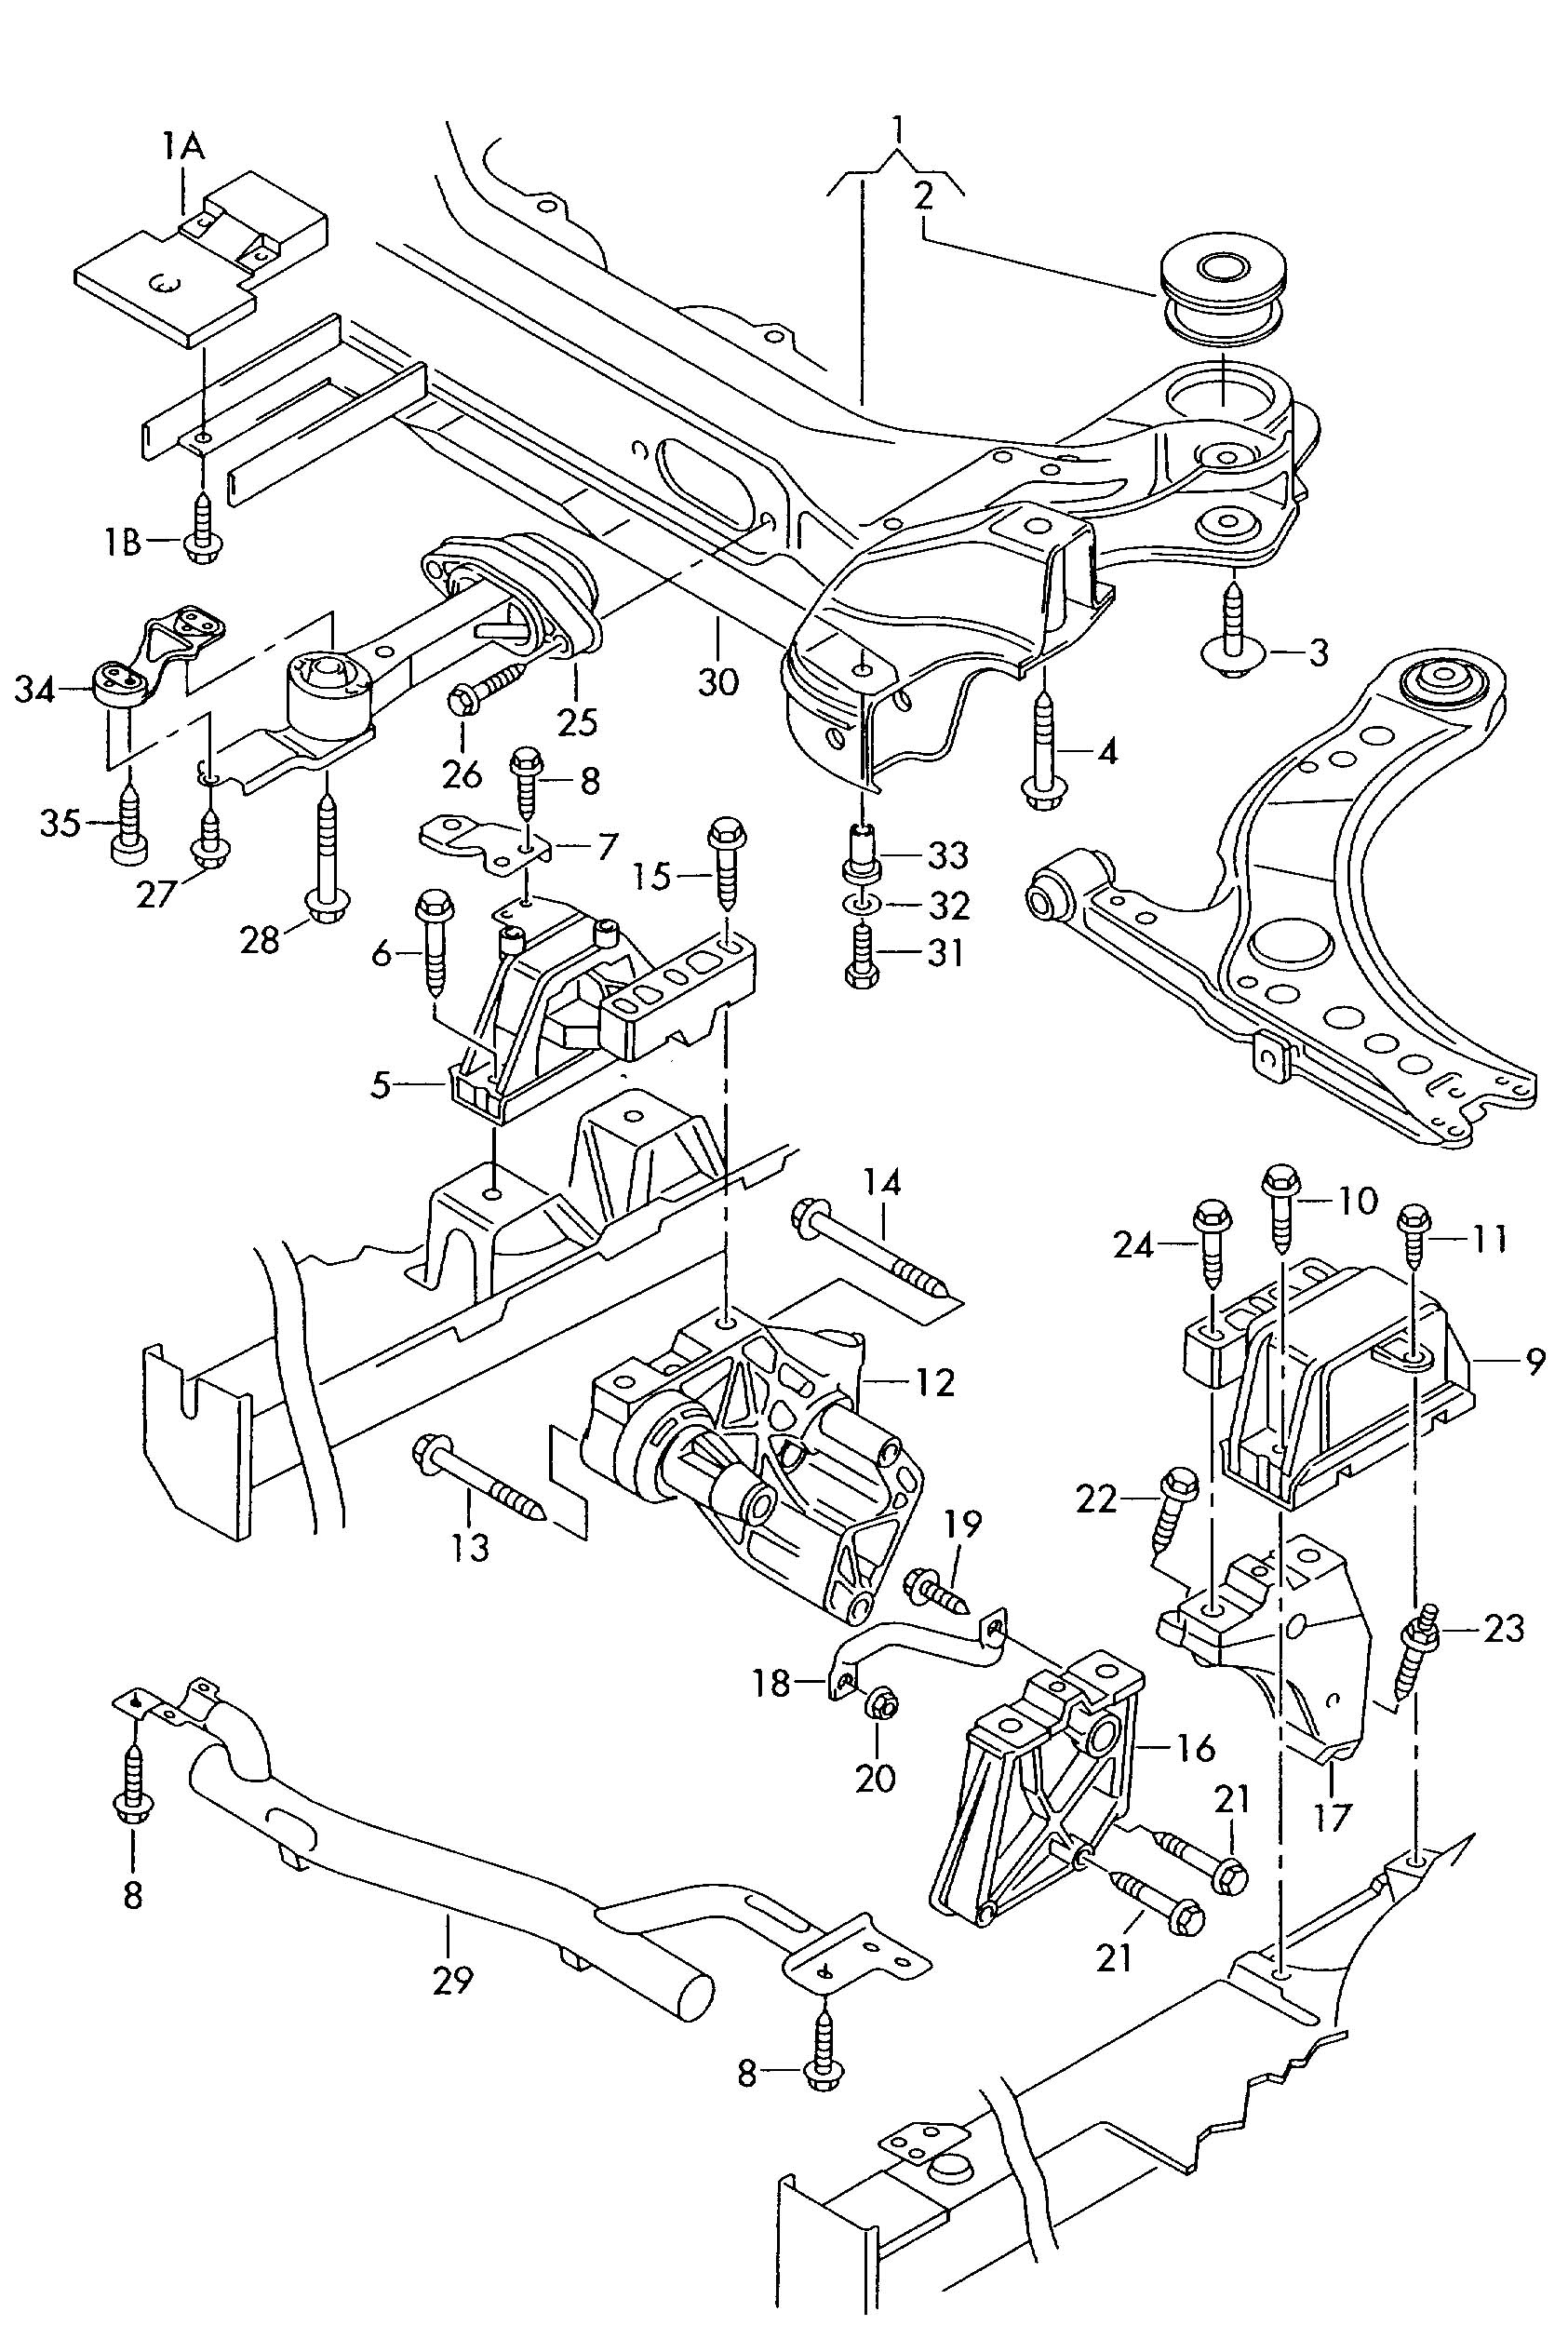 vw new beetle engine diagram image volkswagen golf wiring diagram volkswagen discover your wiring on 2004 vw new beetle engine diagram